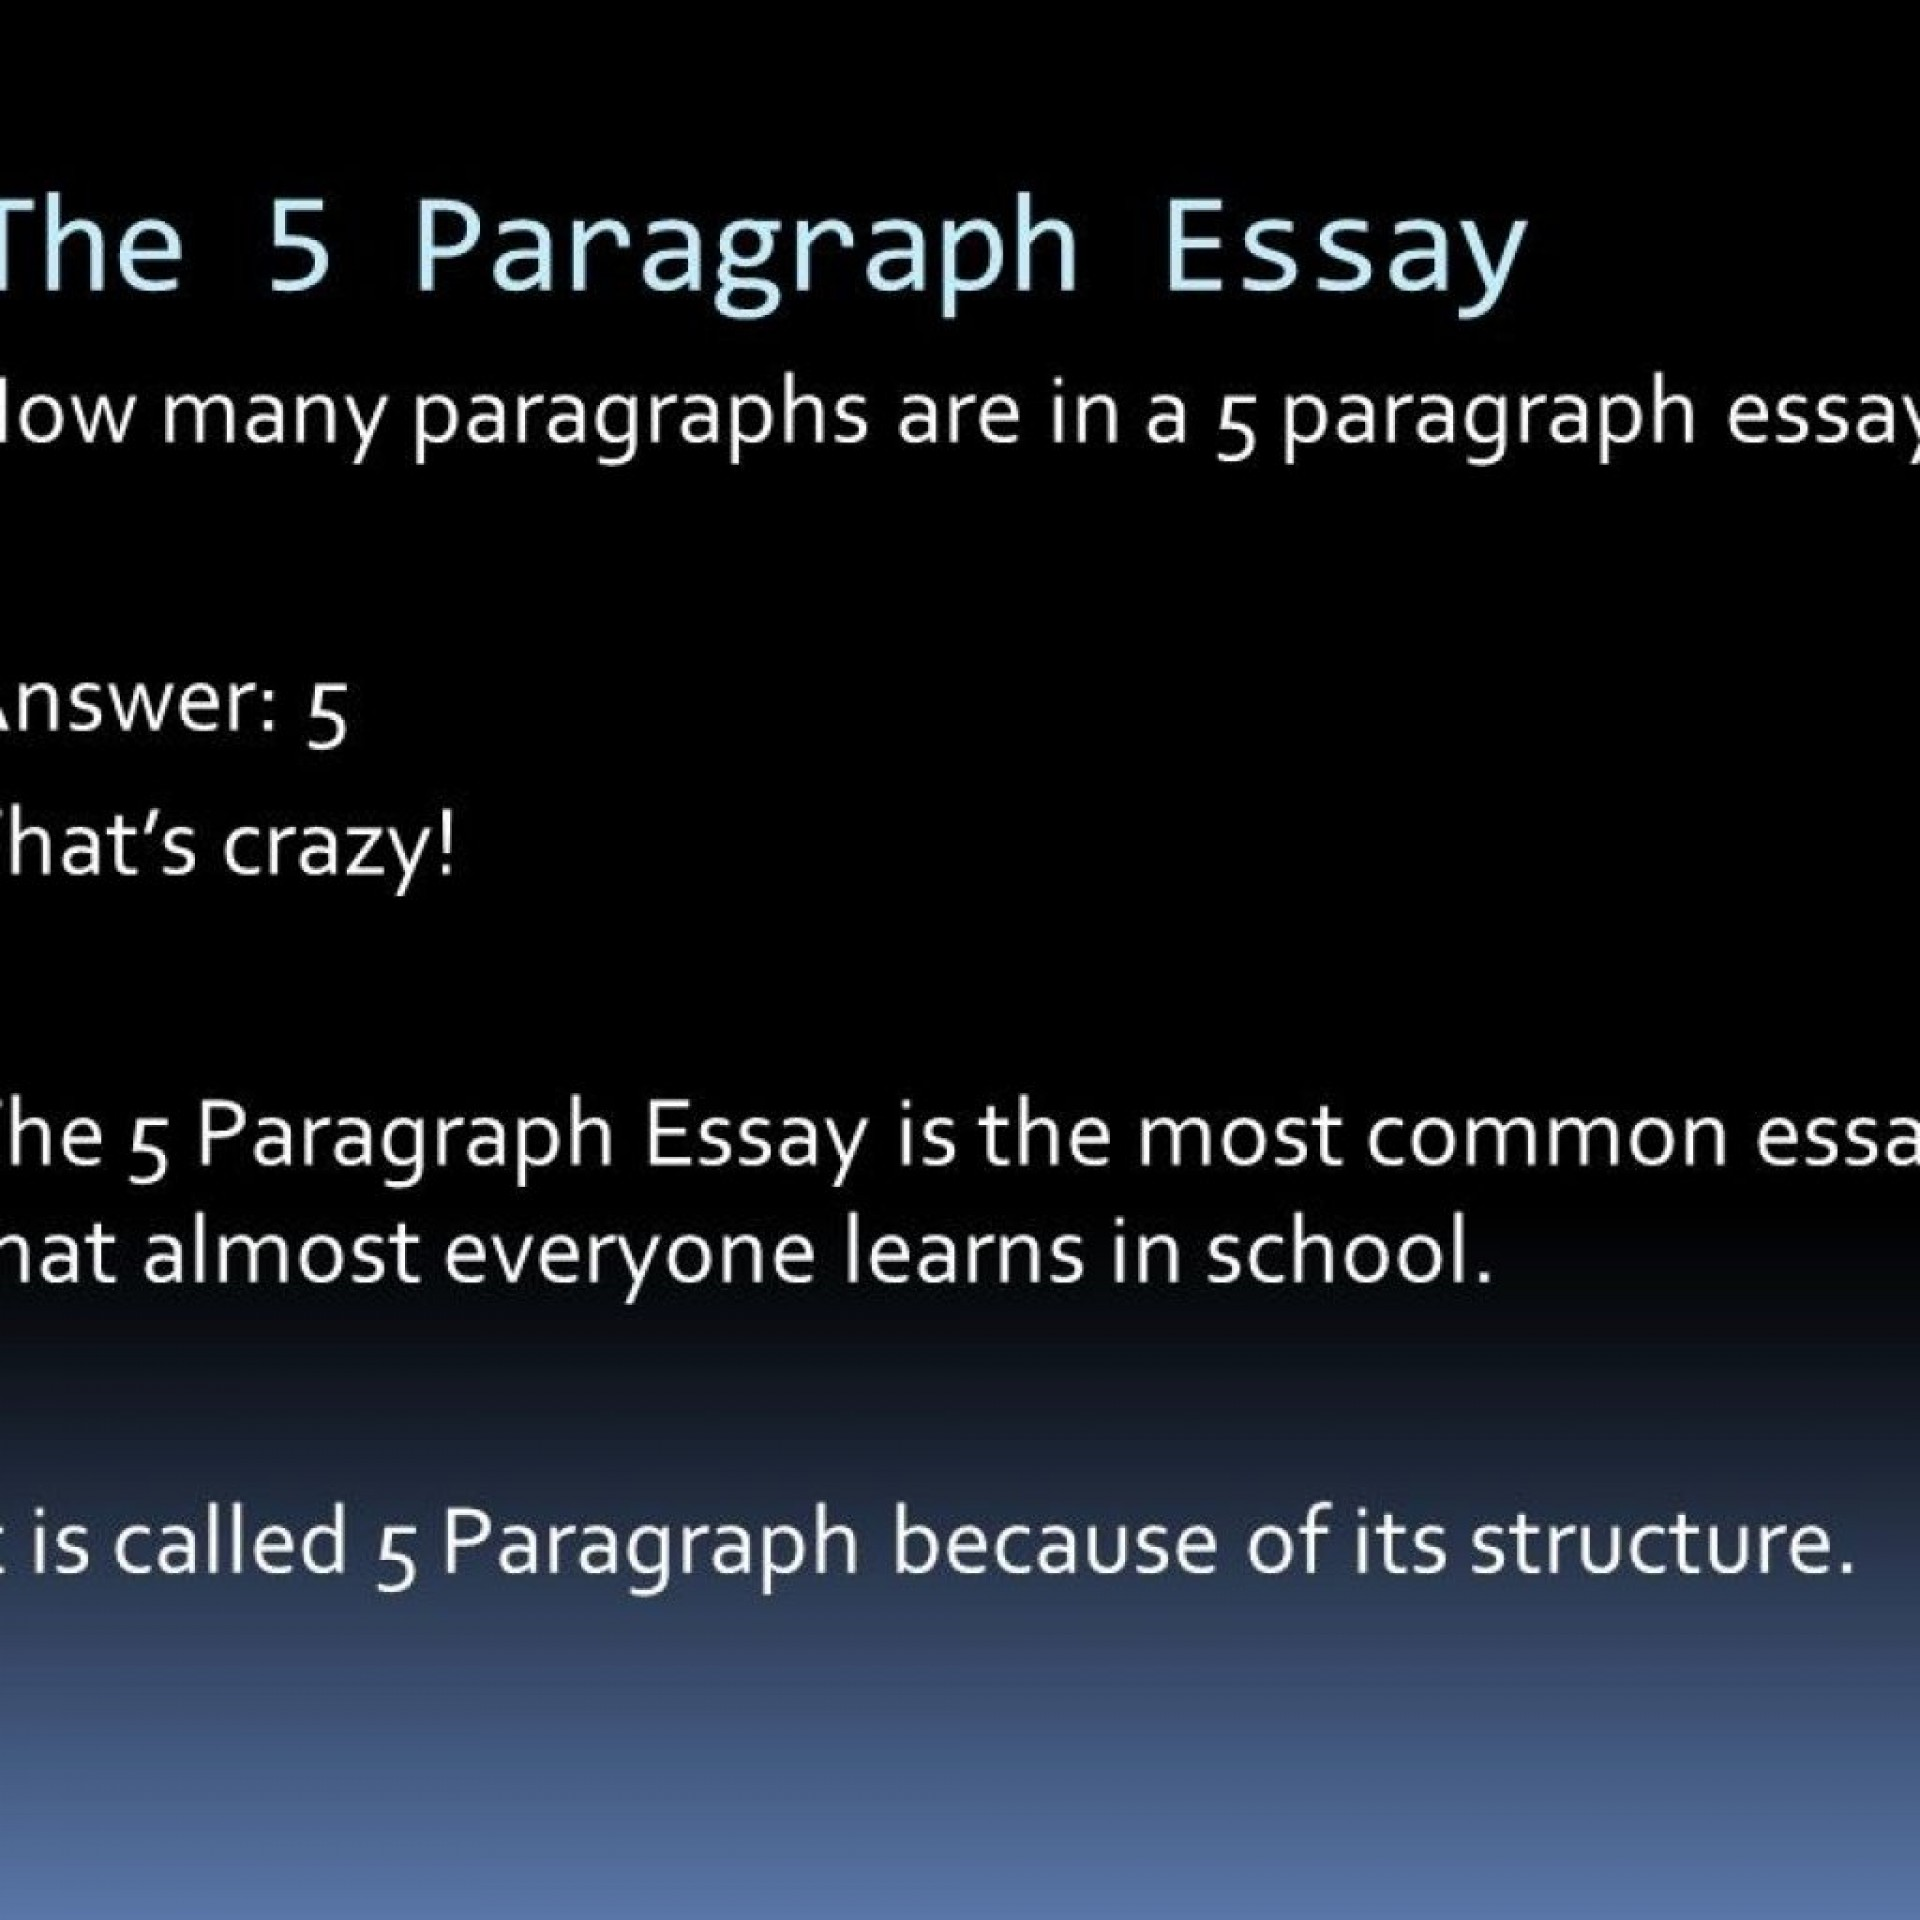 002 2867177336 How Many Sentences Is In Essay Example Incredible Paragraphs A College Argumentative Thematic 1920